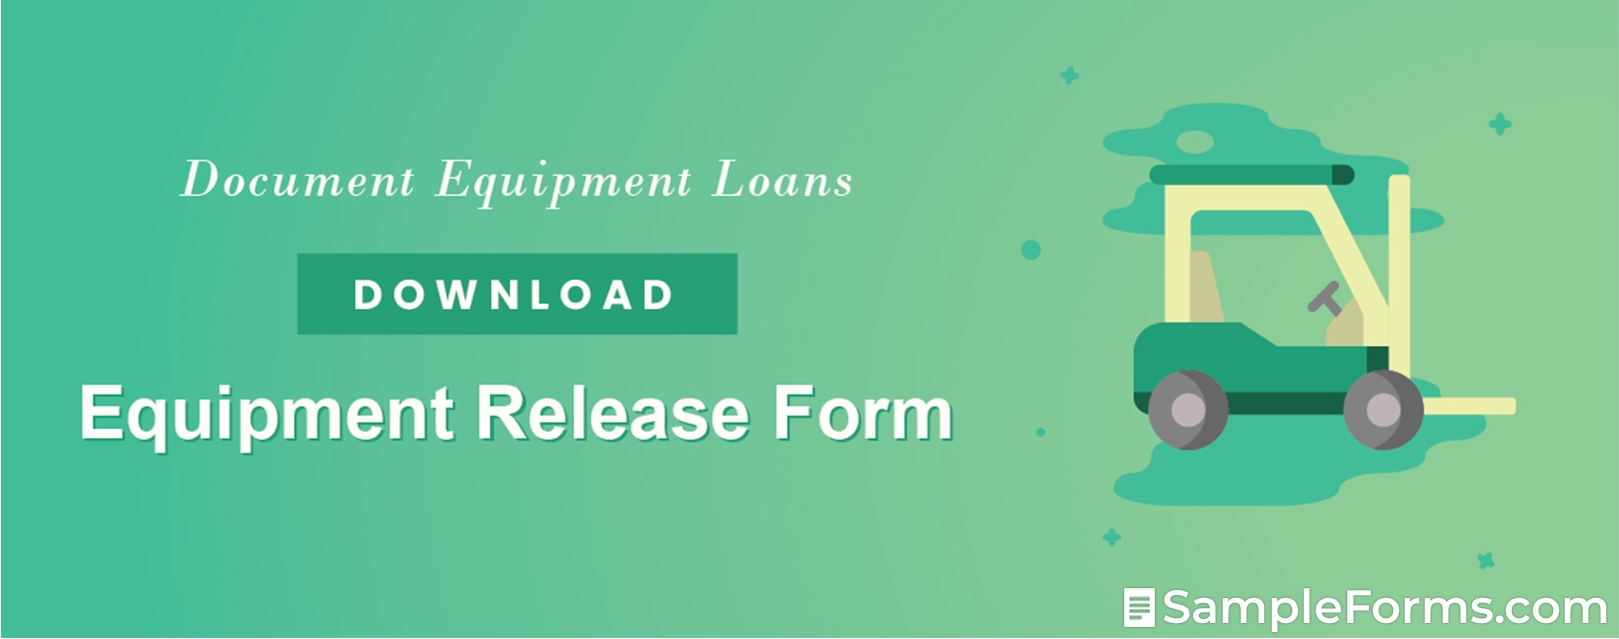 Equipment Release Form1